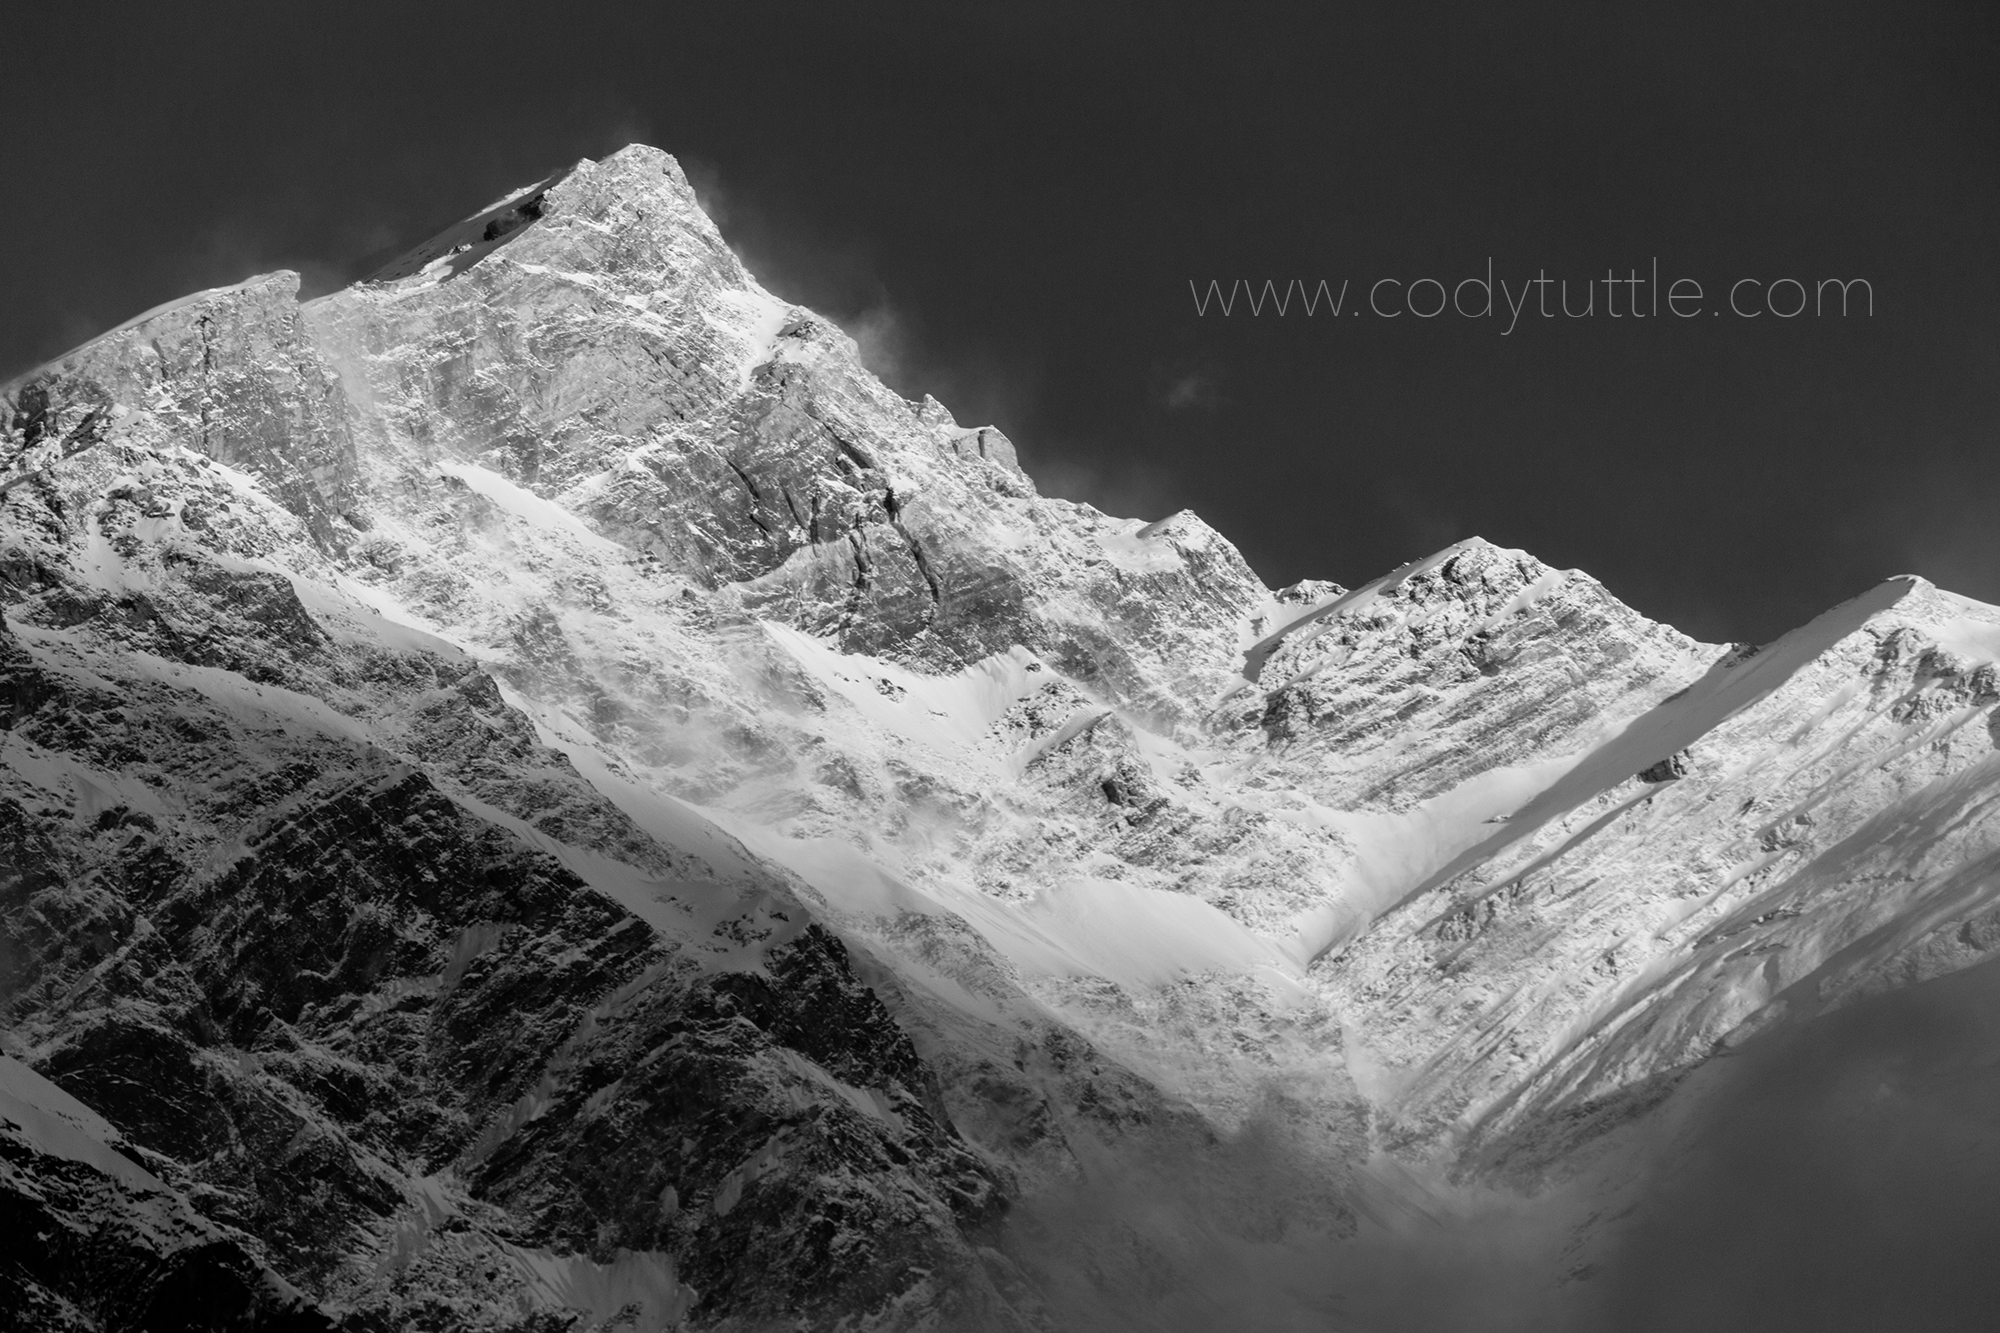 Annapurna North Face seen from basecamp. Photo: Cody Tuttle